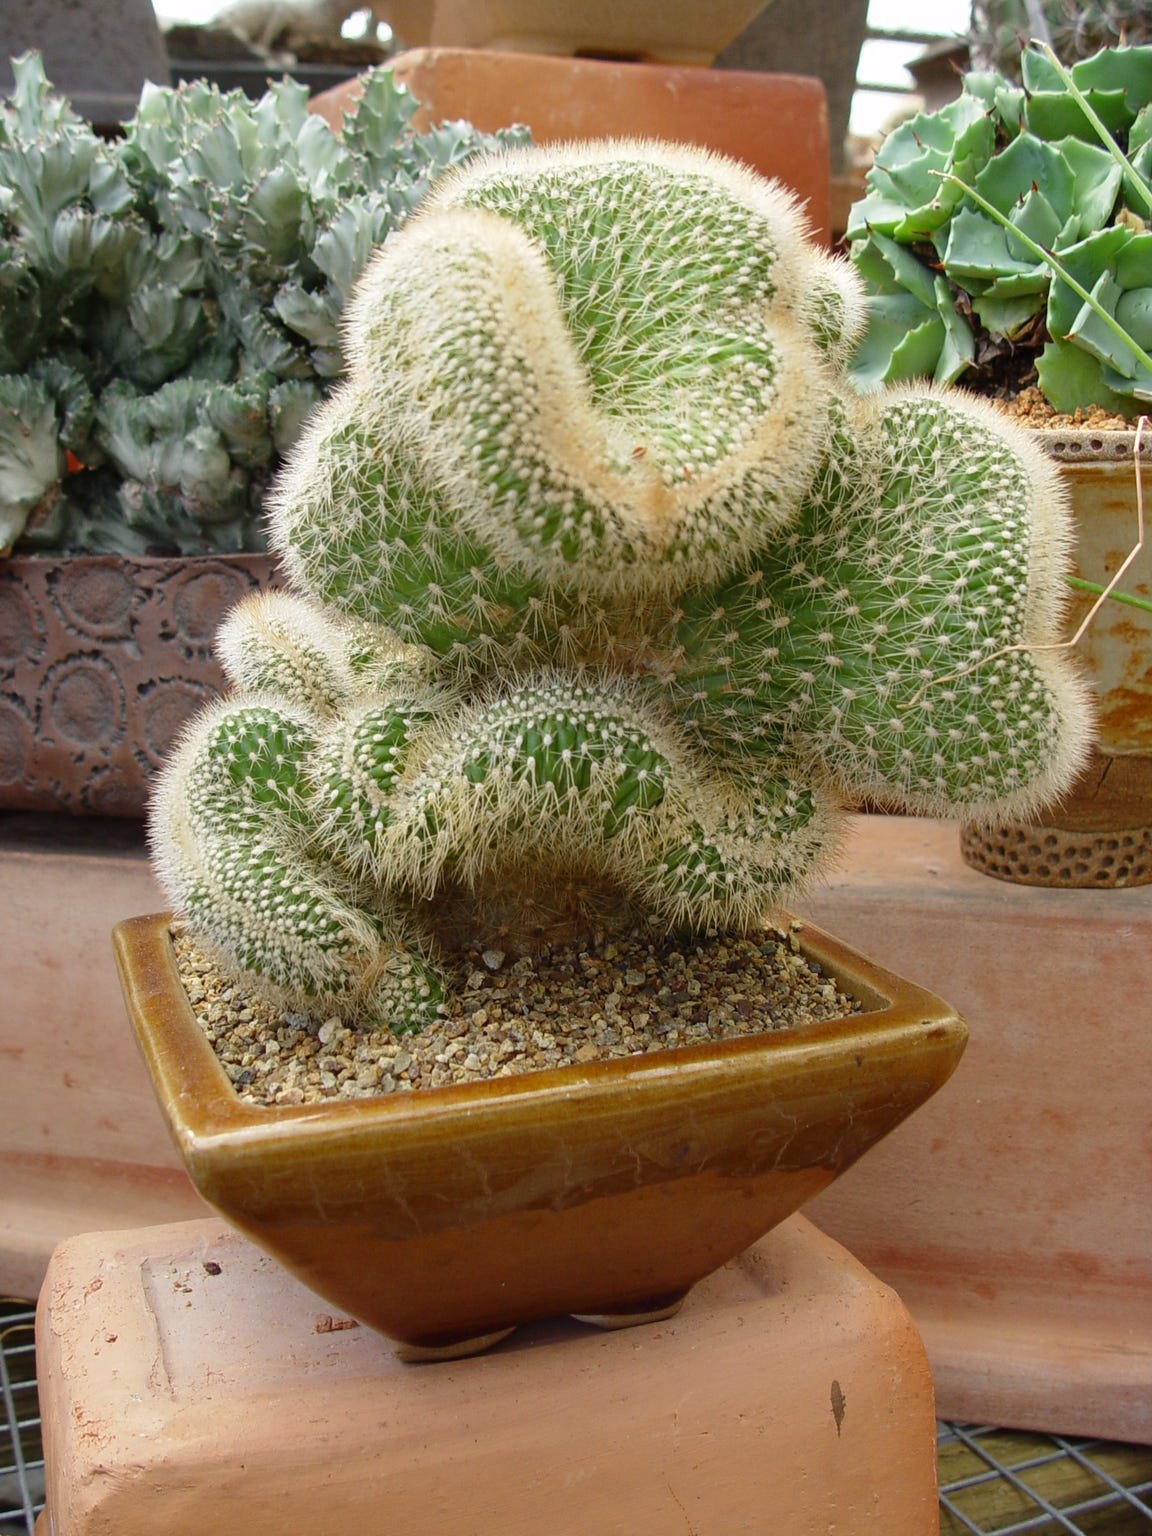 Beautifully distorted crested or monstrose cactus make some of the finest living sculptures due to their bizarre forms.